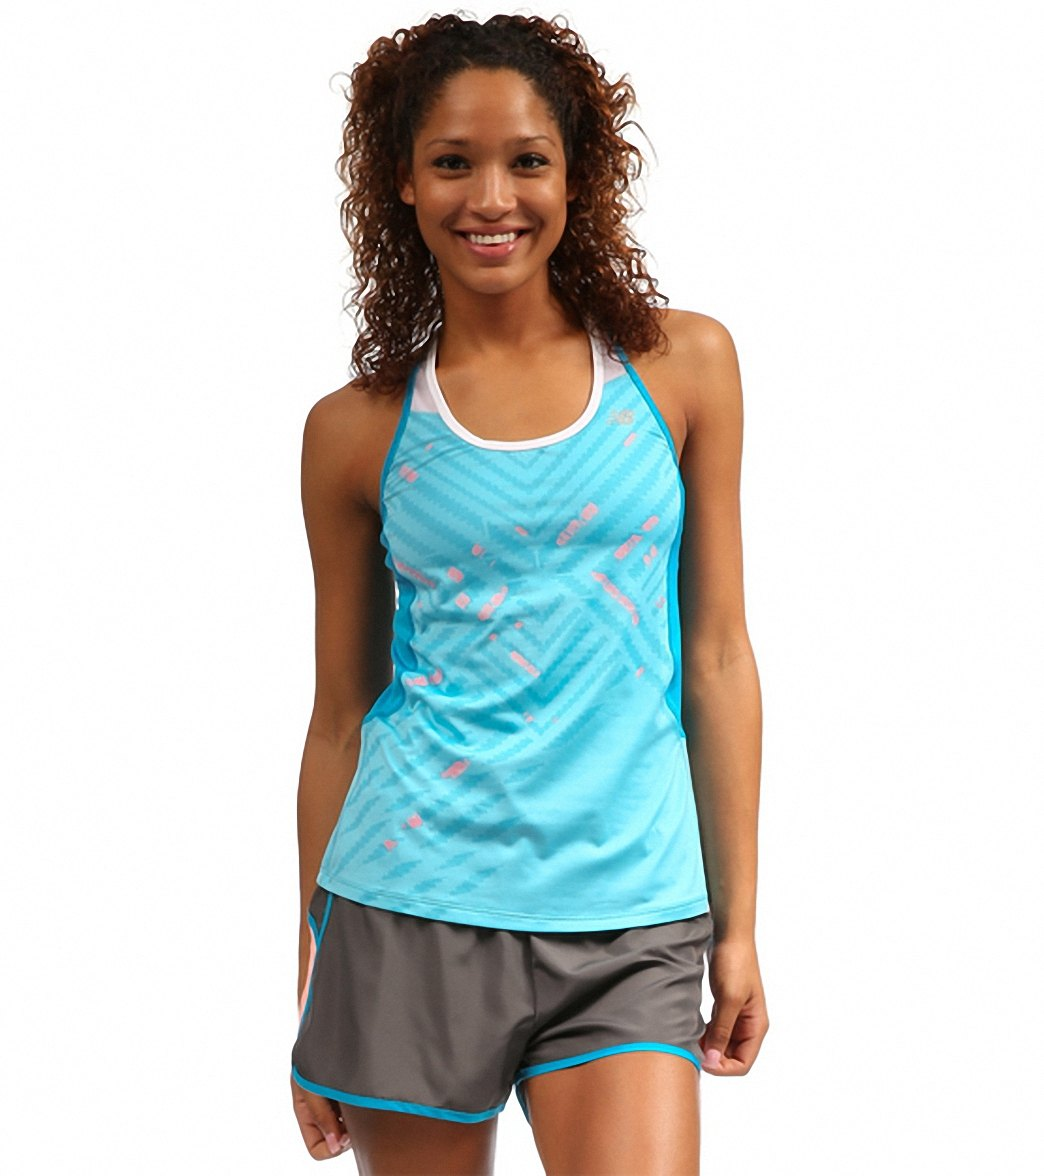 c5155544e6309 New Balance Women s Tonic Graphic Running Tank at SwimOutlet.com